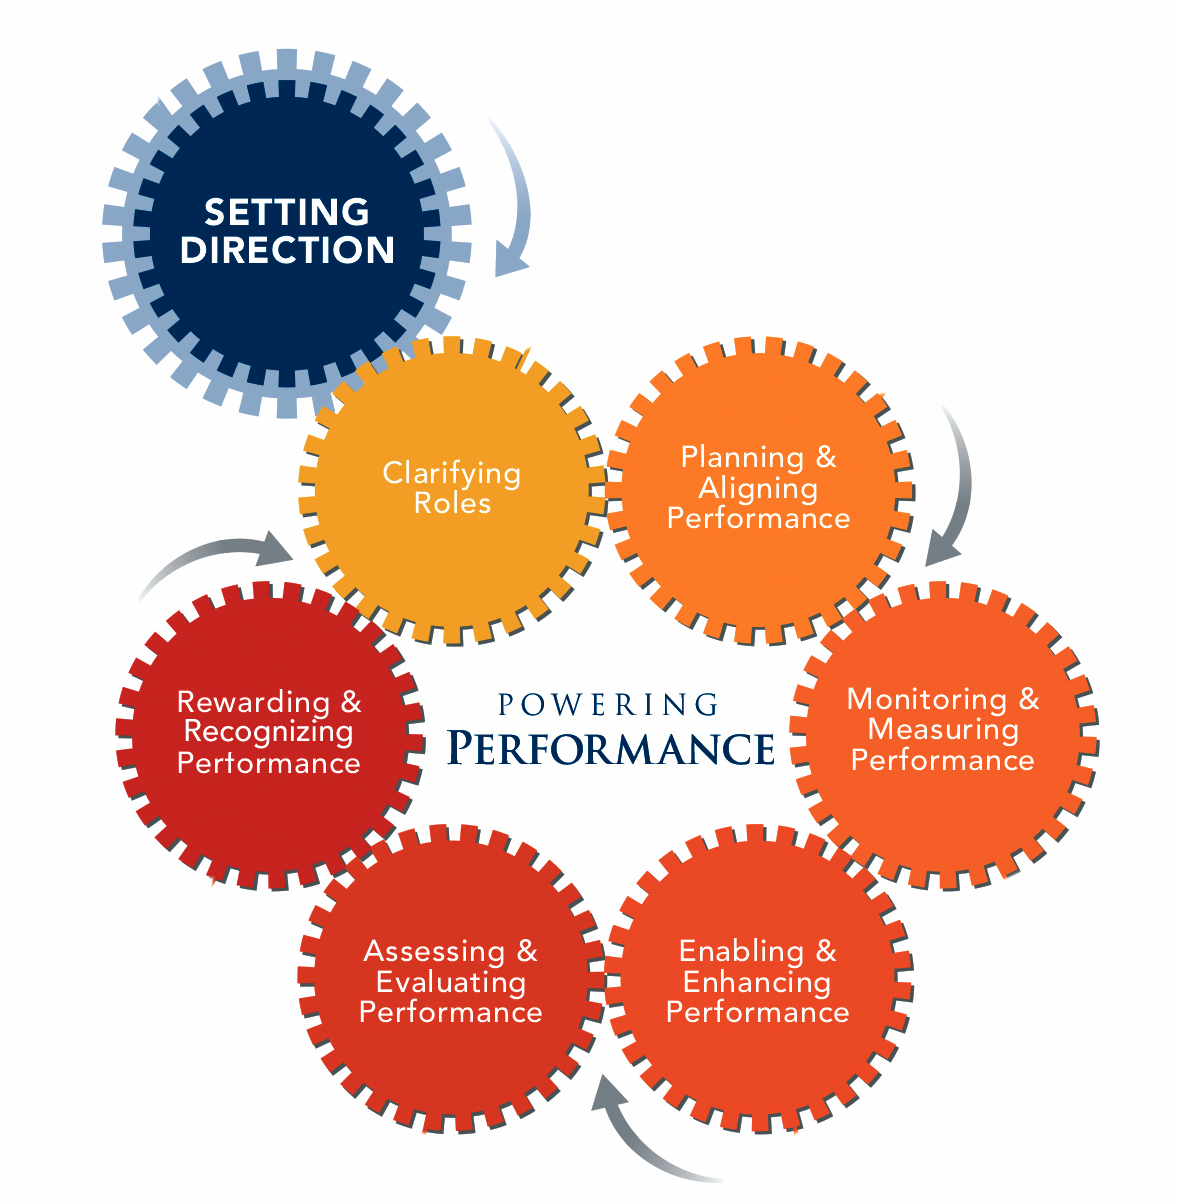 what can performance management offer to In this article we will face the facts about performance management—what it  means, what it offers to an organization and to service recipients, and what being .